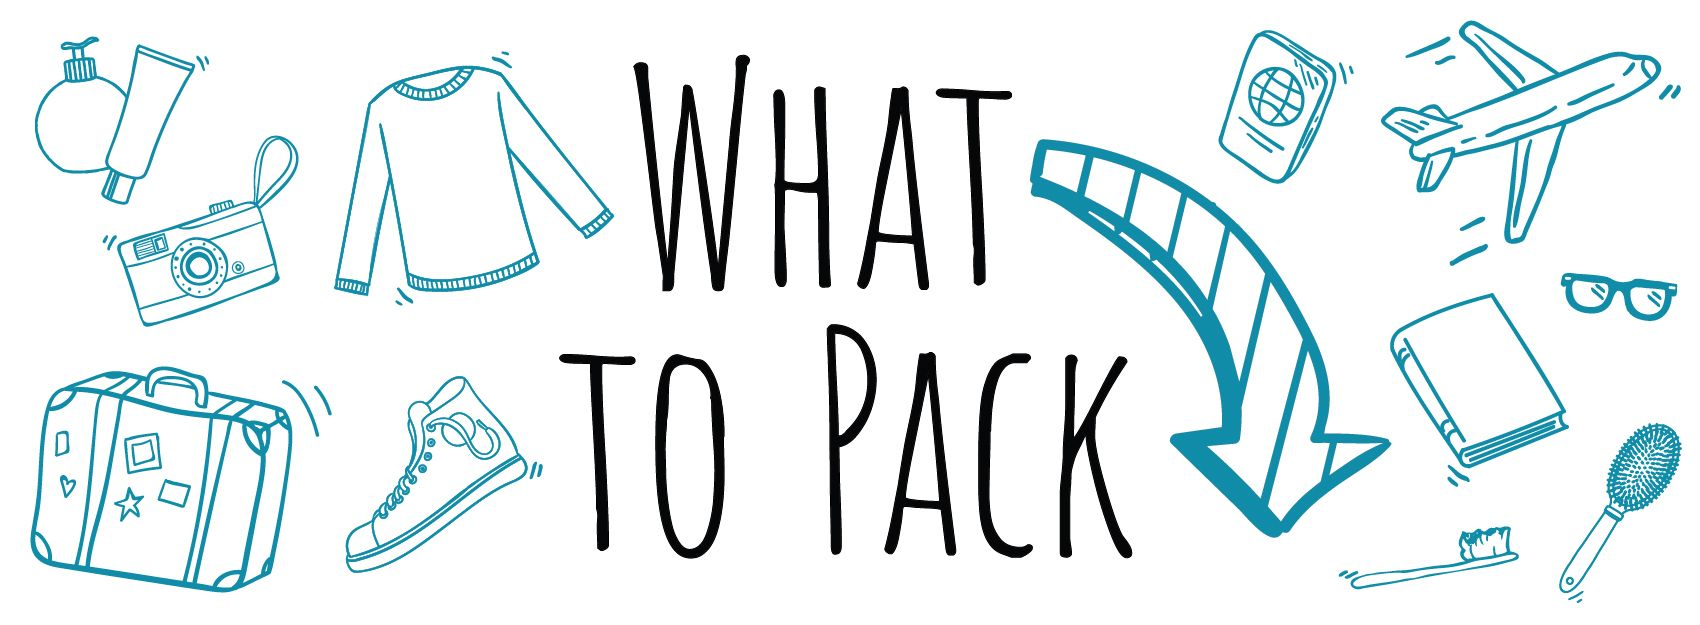 what to pack graphic with icons of travel items